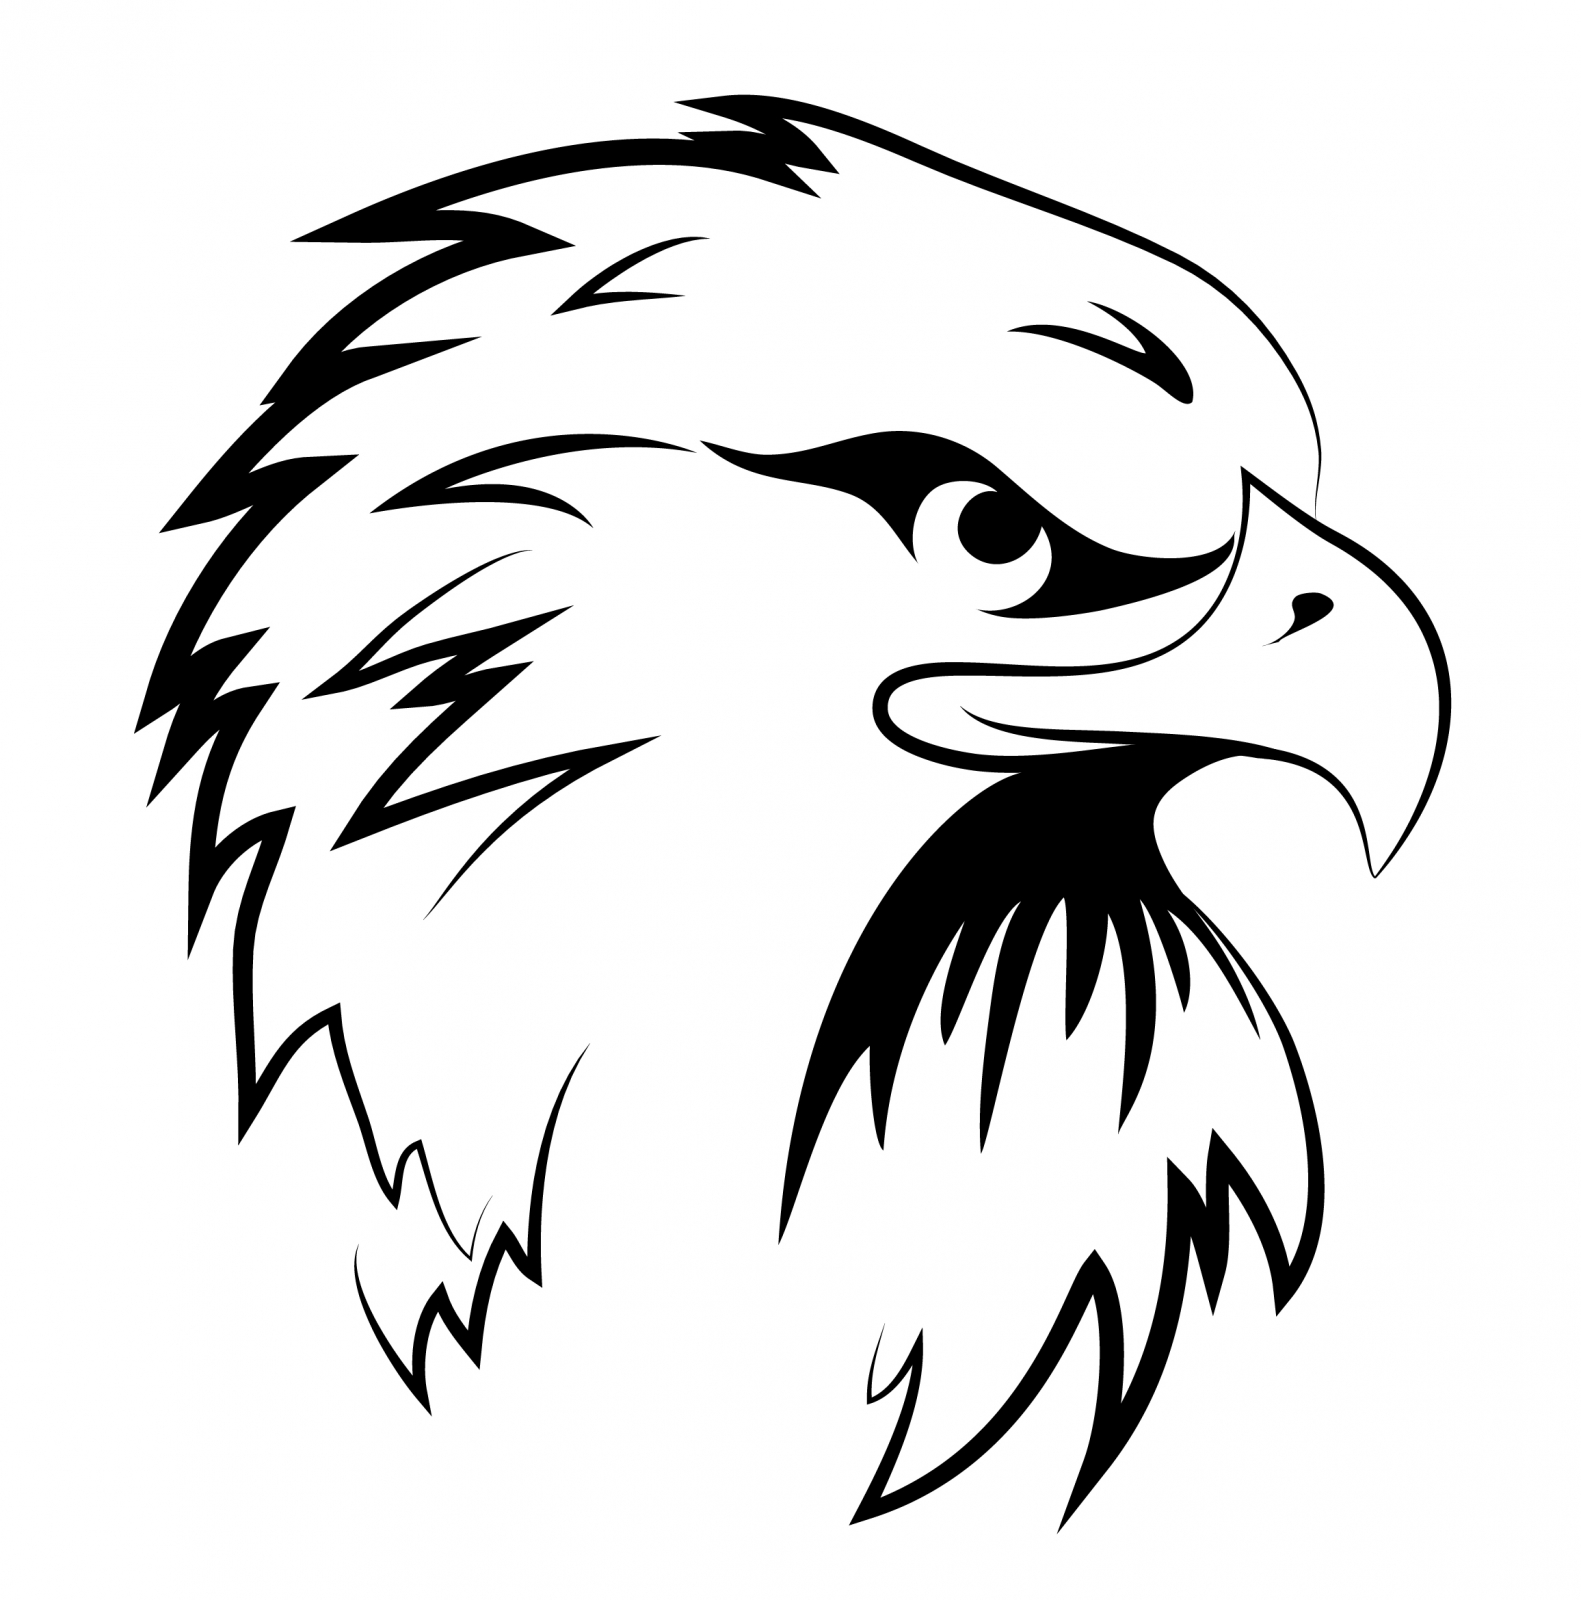 Black And White Eagle Clipart | Free download best Black And White